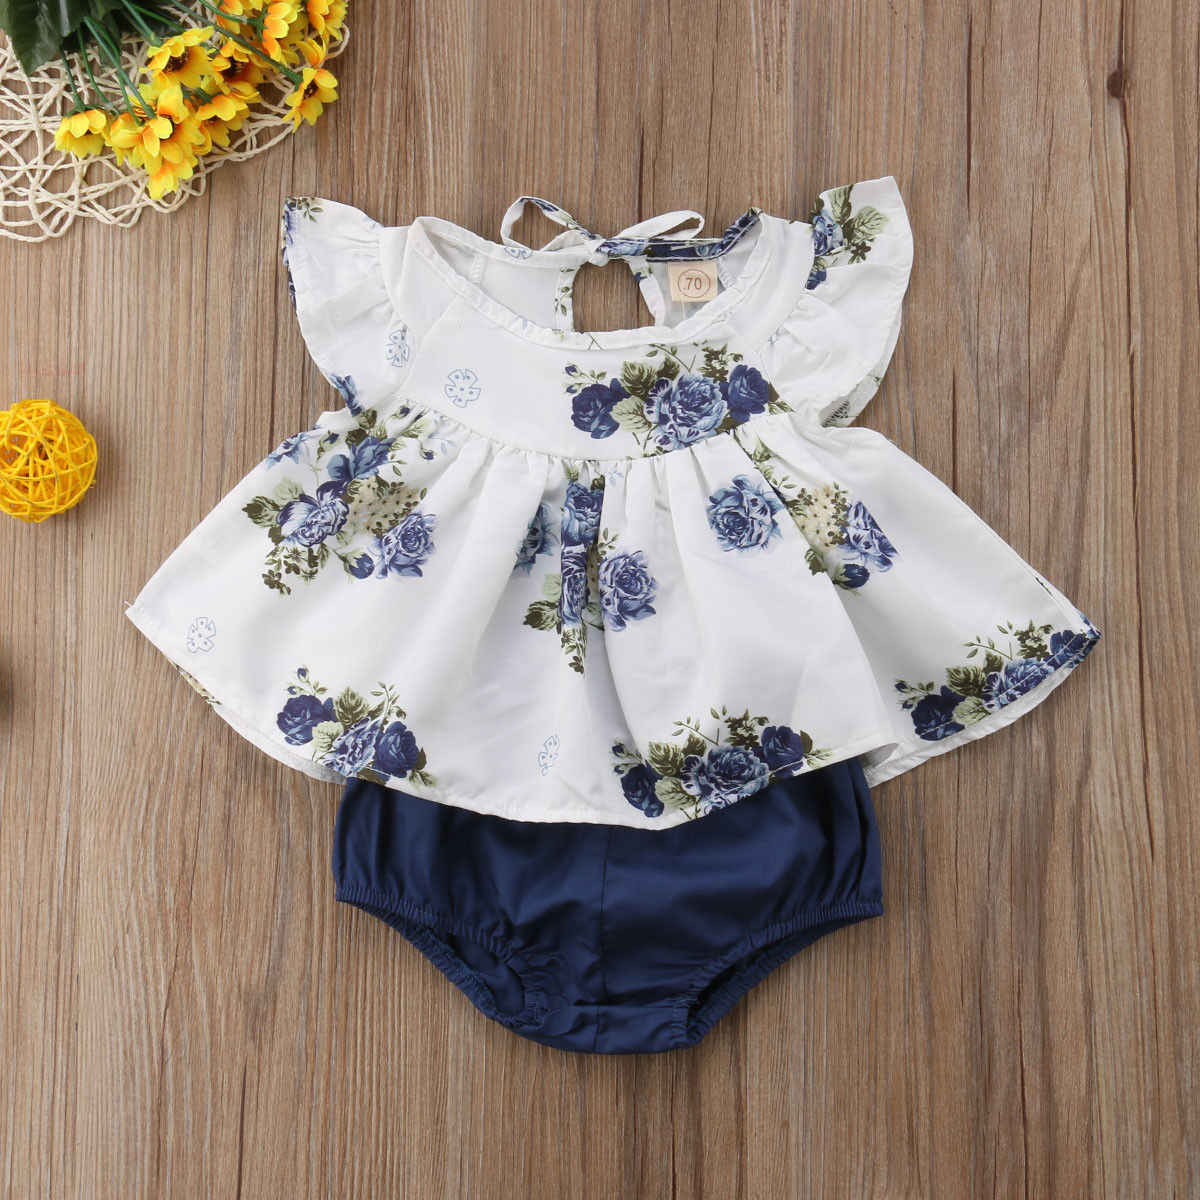 Cheap Baby Clothes Au Pudcoco Girl Clothes Newborn Infant Baby Girls Floral Tops Dress Harem Shorts Pants Summer Clothes Au